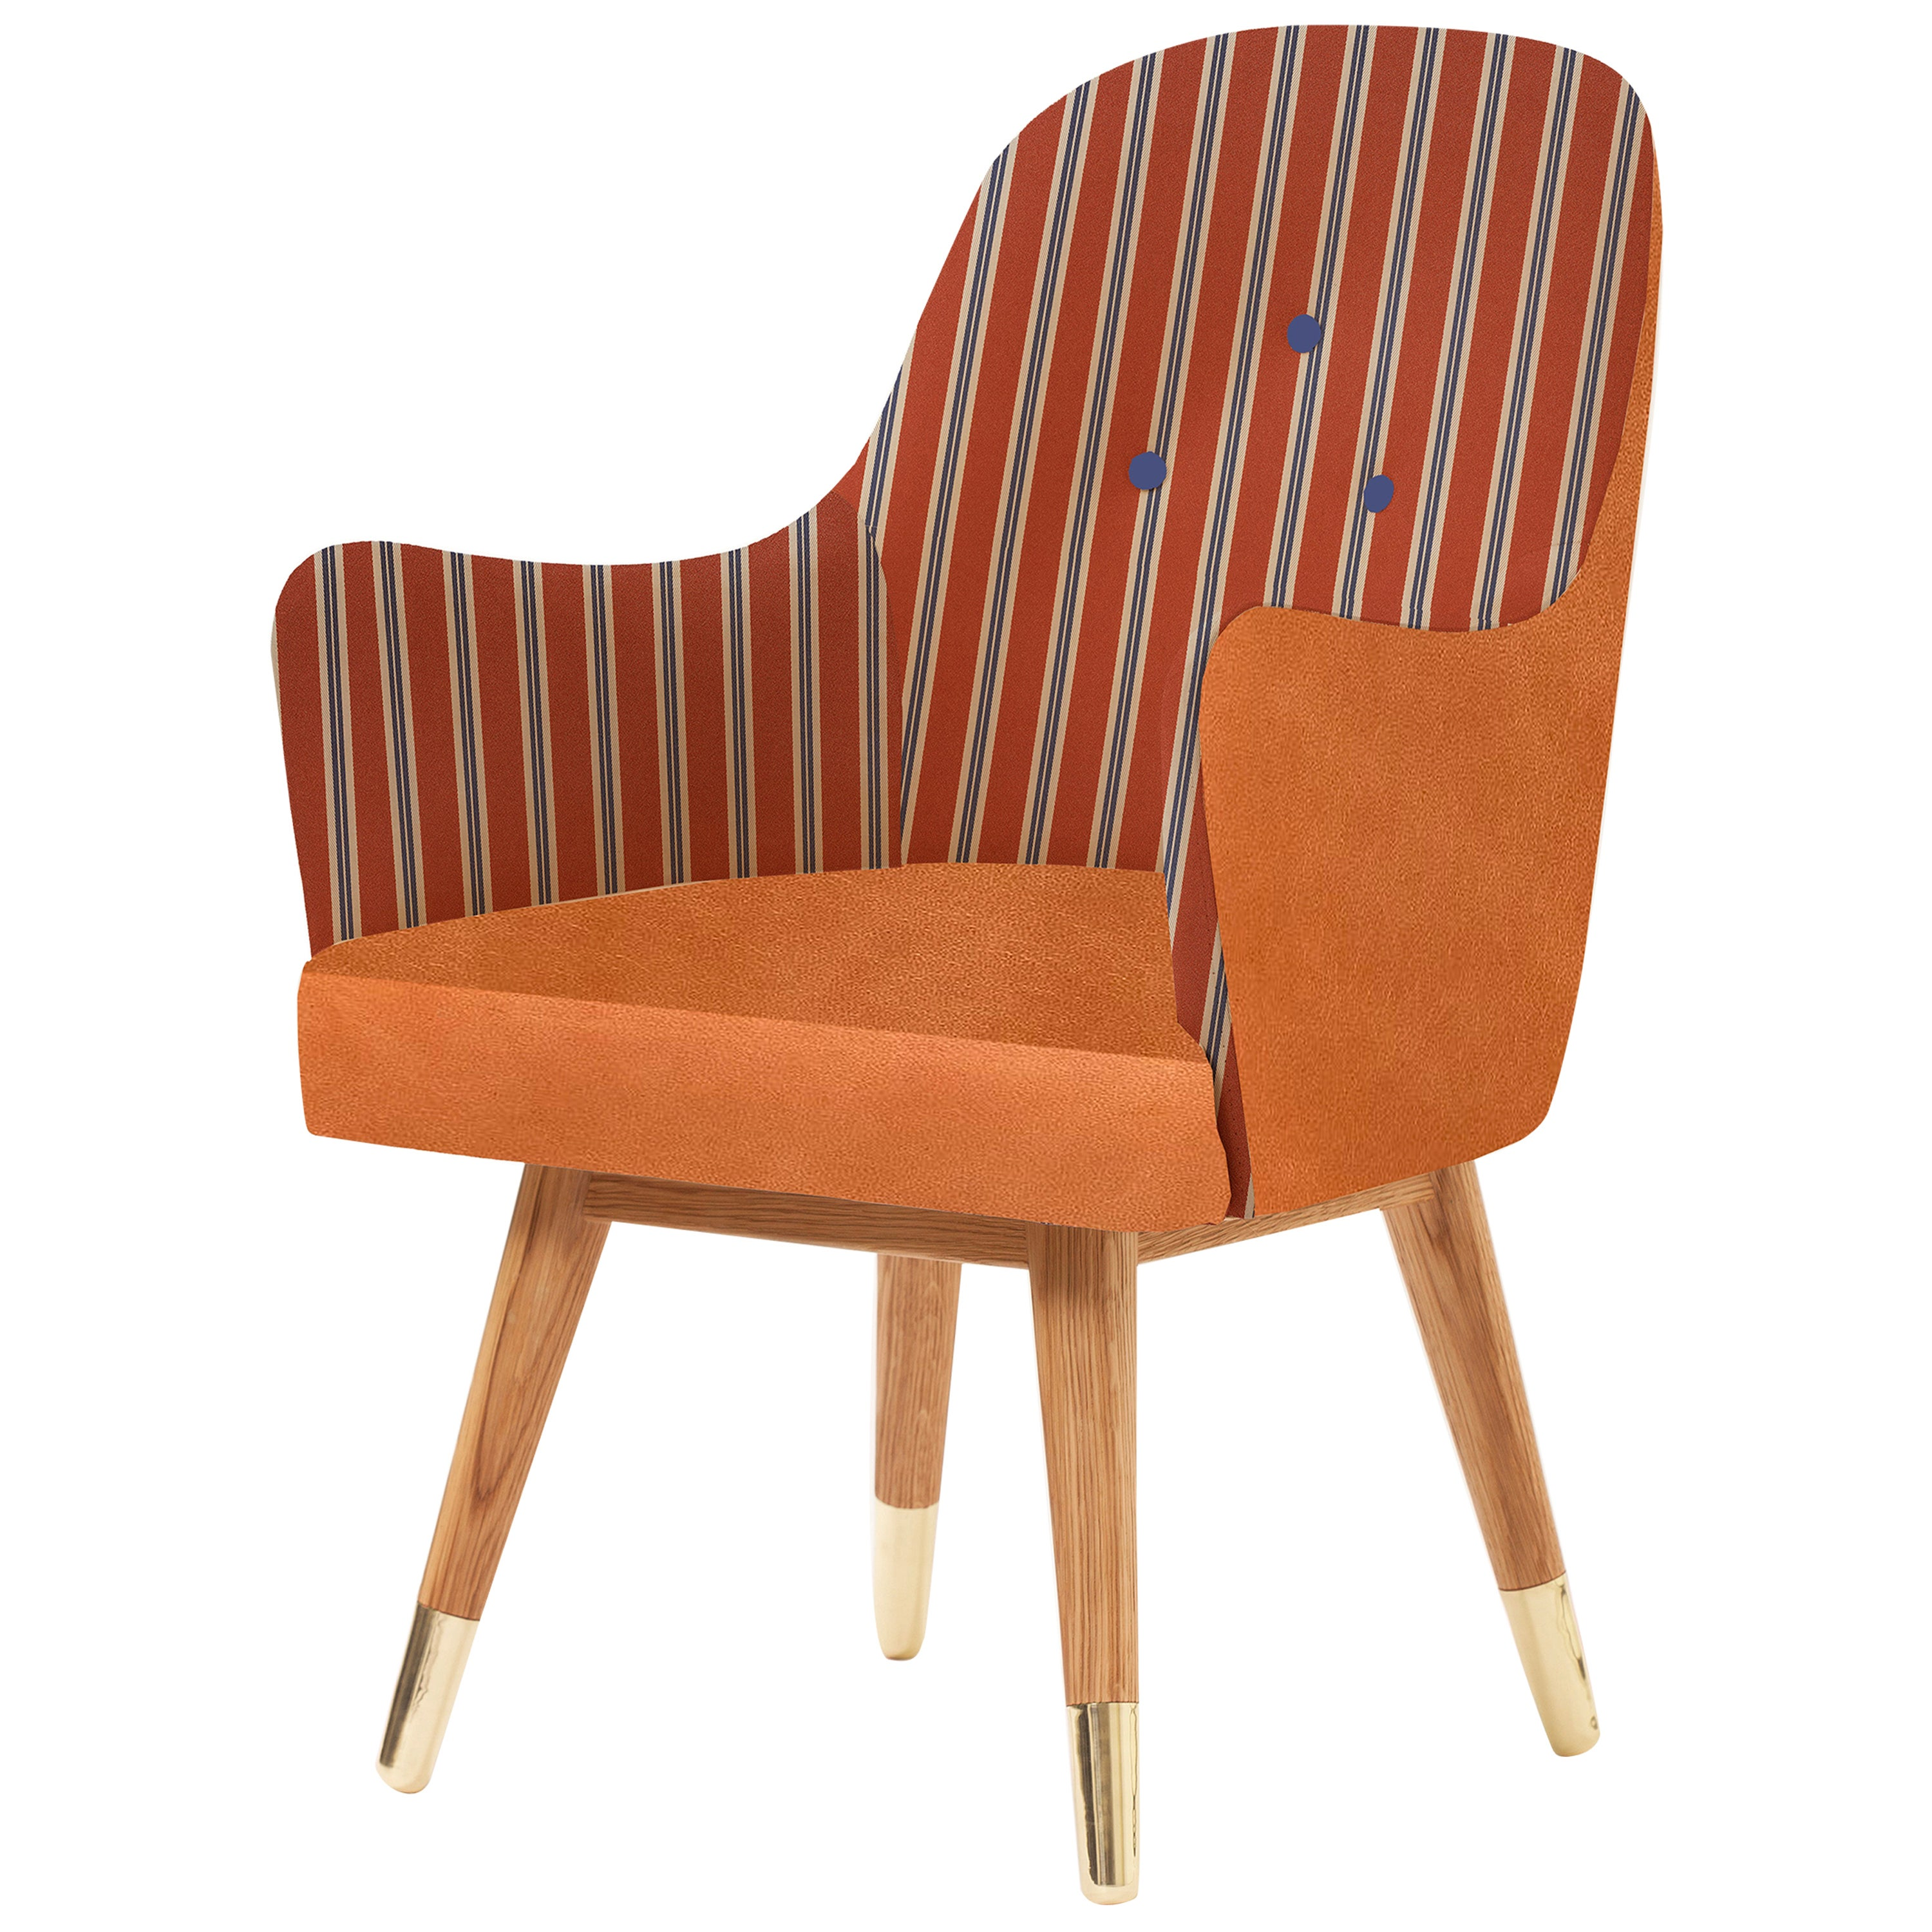 Contemporary Dandy Chair with Leather, Striped Upholstery, Oak and Brass